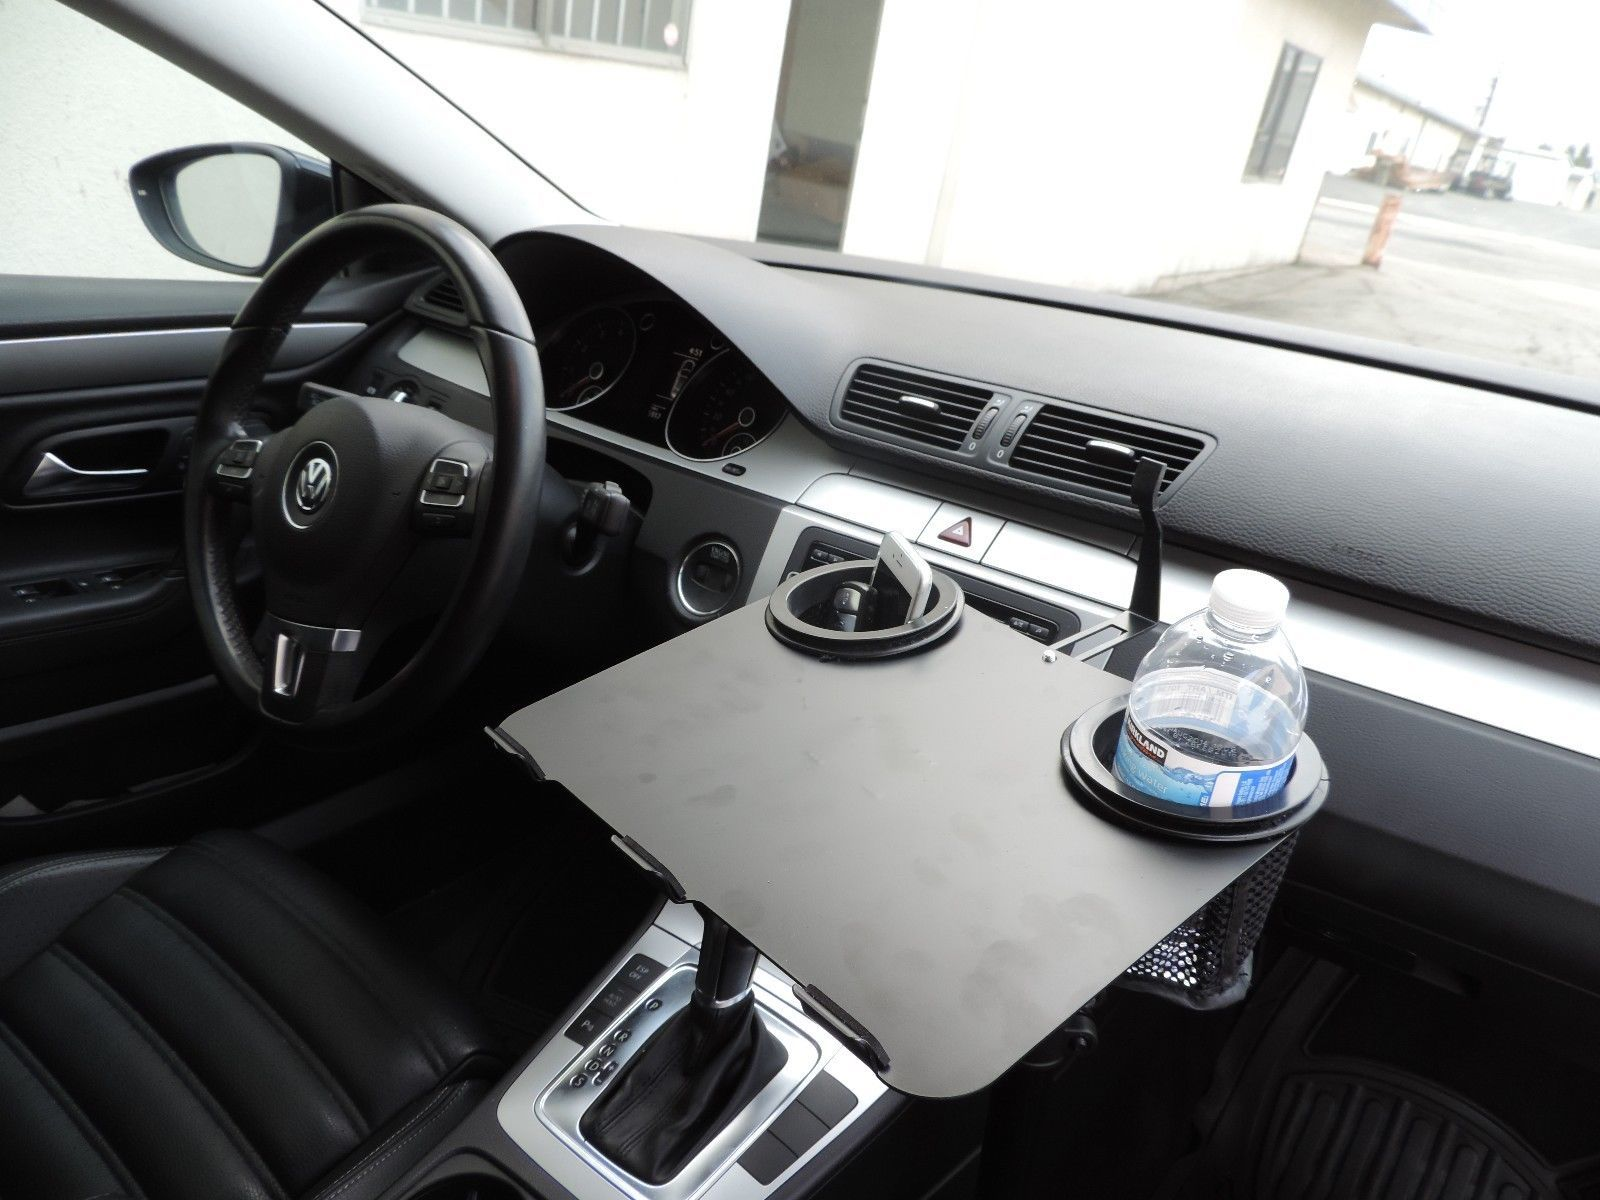 Autos Laptop Notebook Holder Mount Stand for Cars and Vehicles made by steel